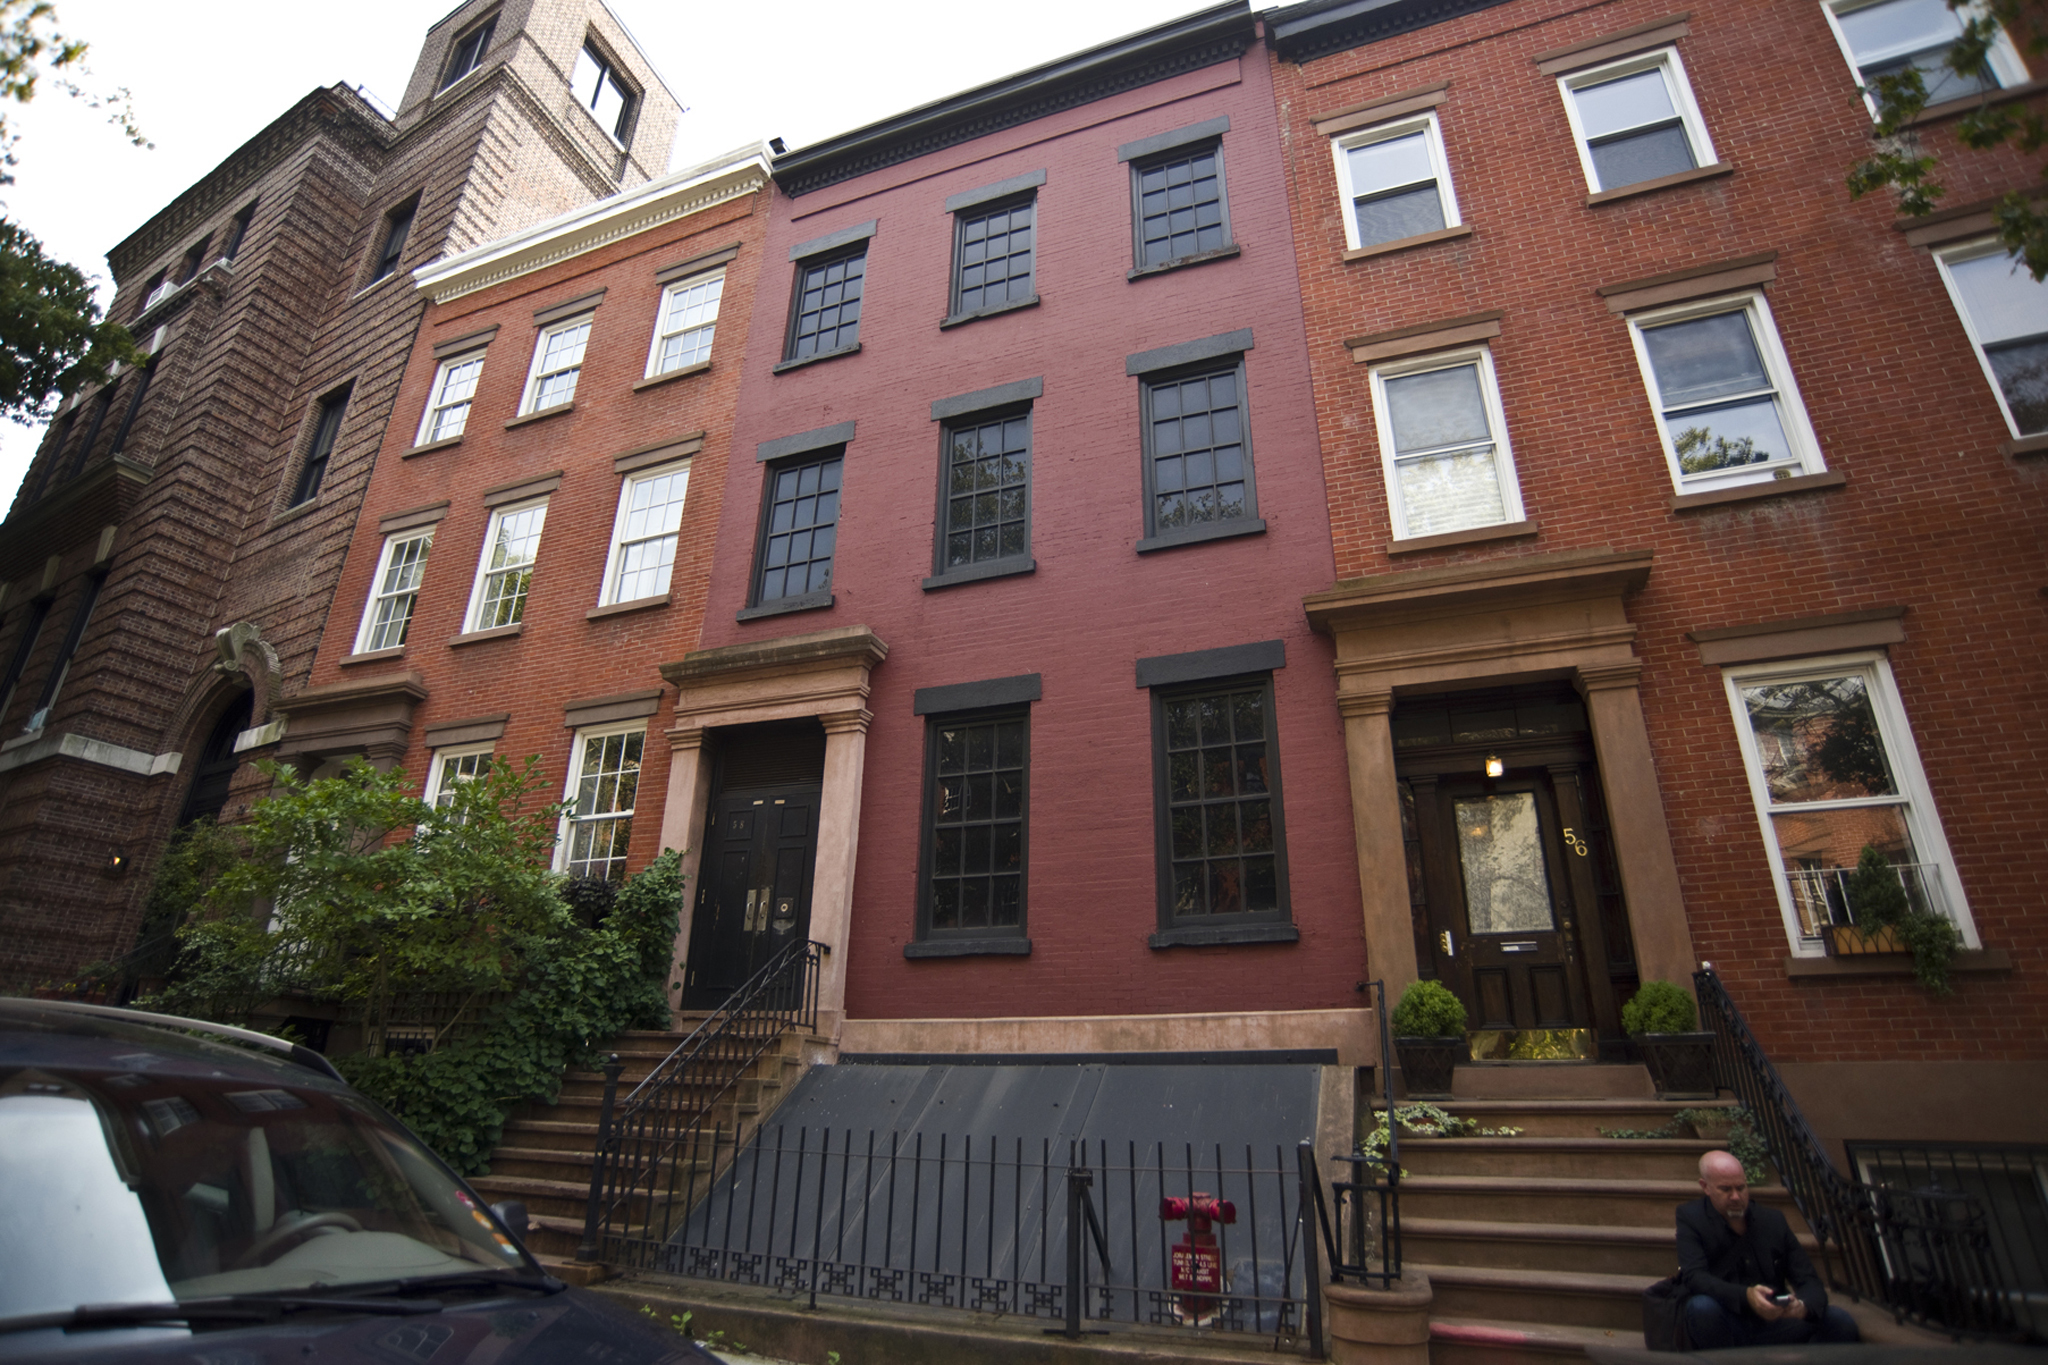 Brooklyn Heights for history buffs